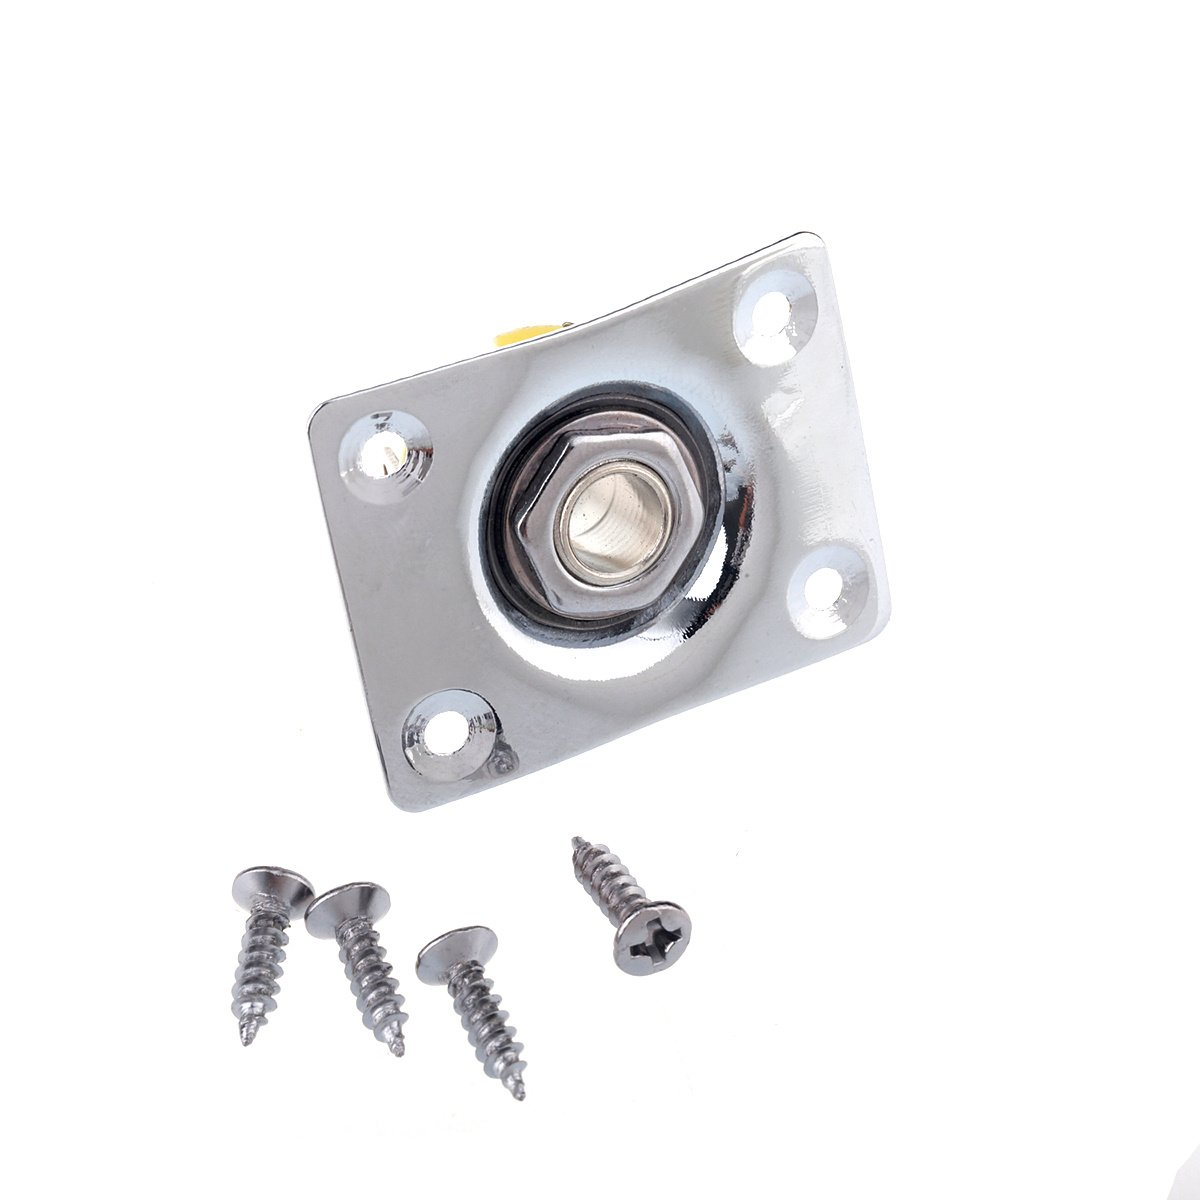 Musiclily 1/4'' 6.35mm Guitar Mono Output Jack Plate Input Socket for Gibson LP Les Paul Electric Guitar, Chrome